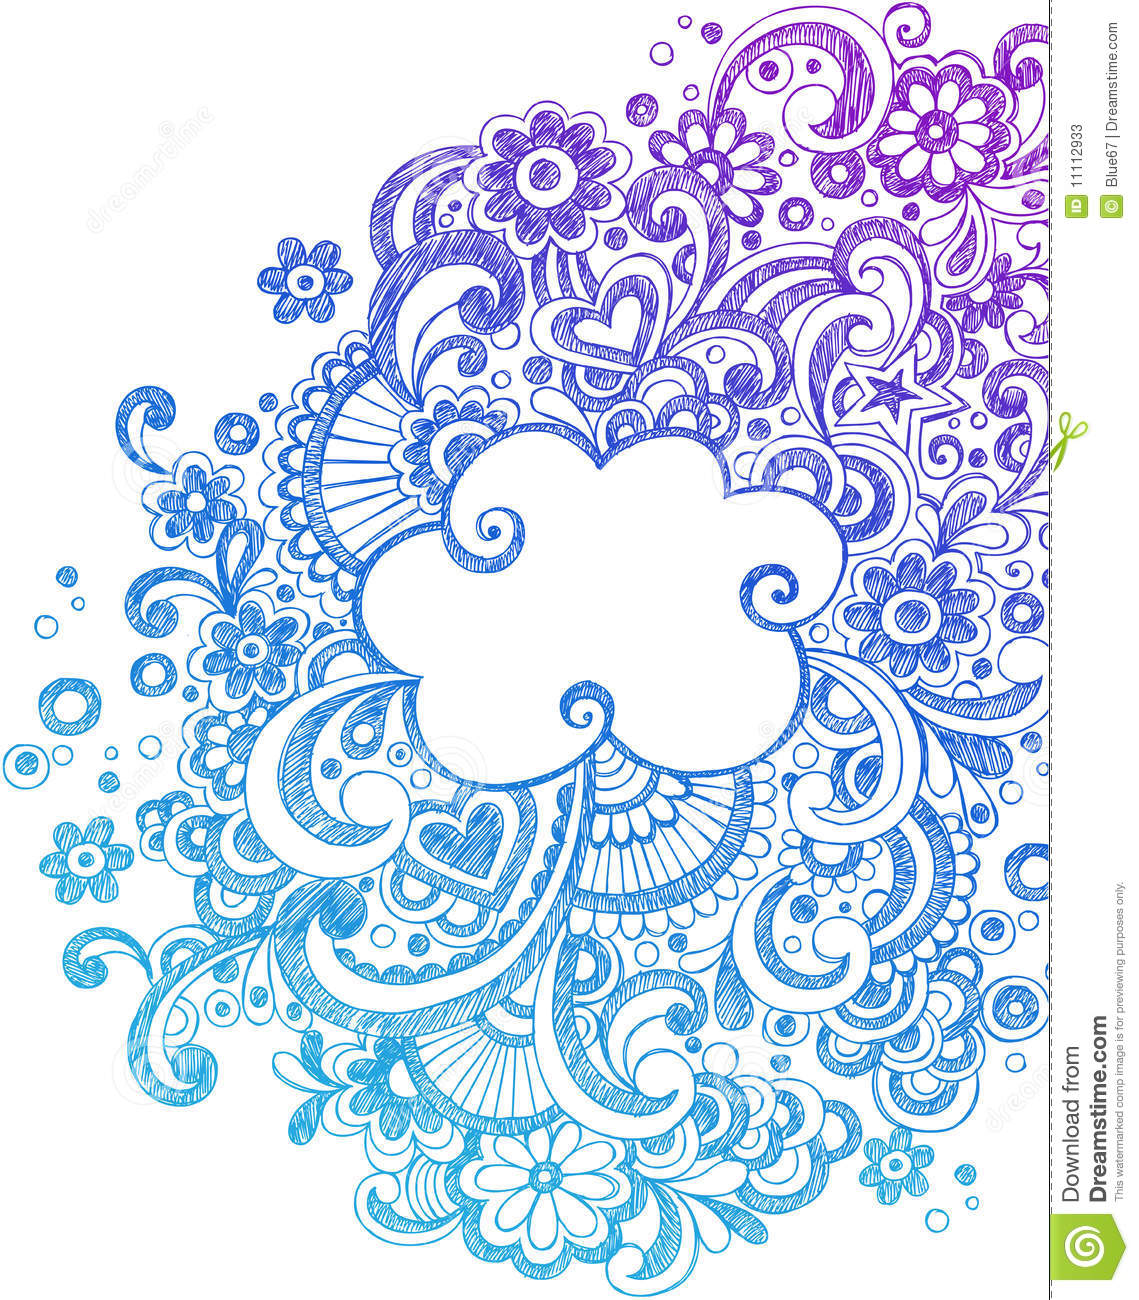 Abstract Sketchy Notebook Doodles Stock Vector Image